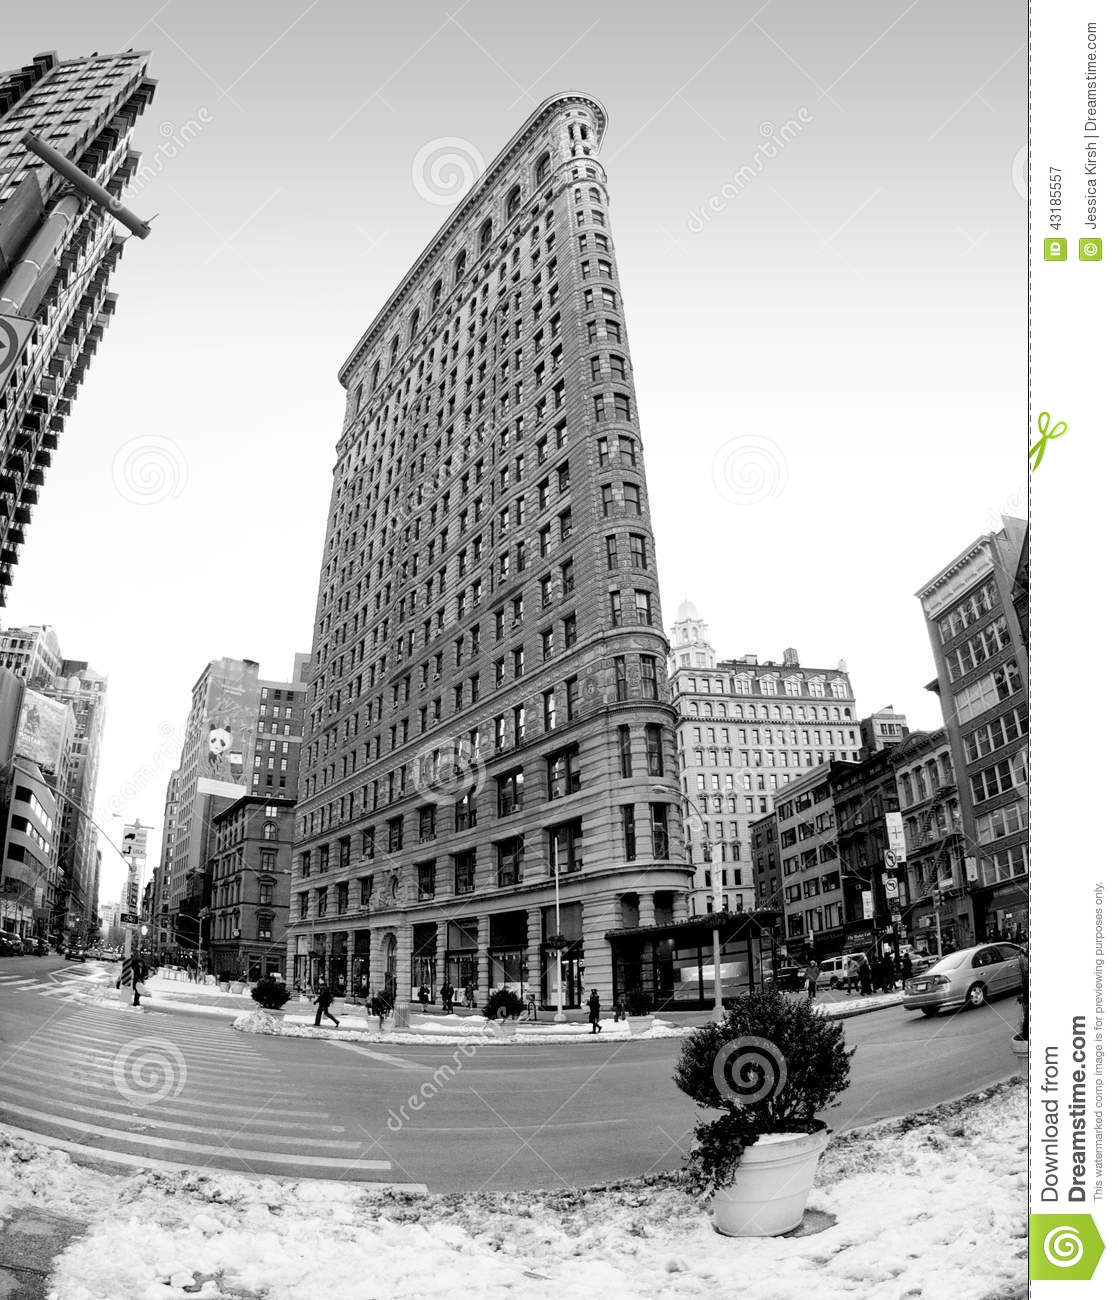 Flat Nyc: The Historic Flat Iron Building In New York City, New York